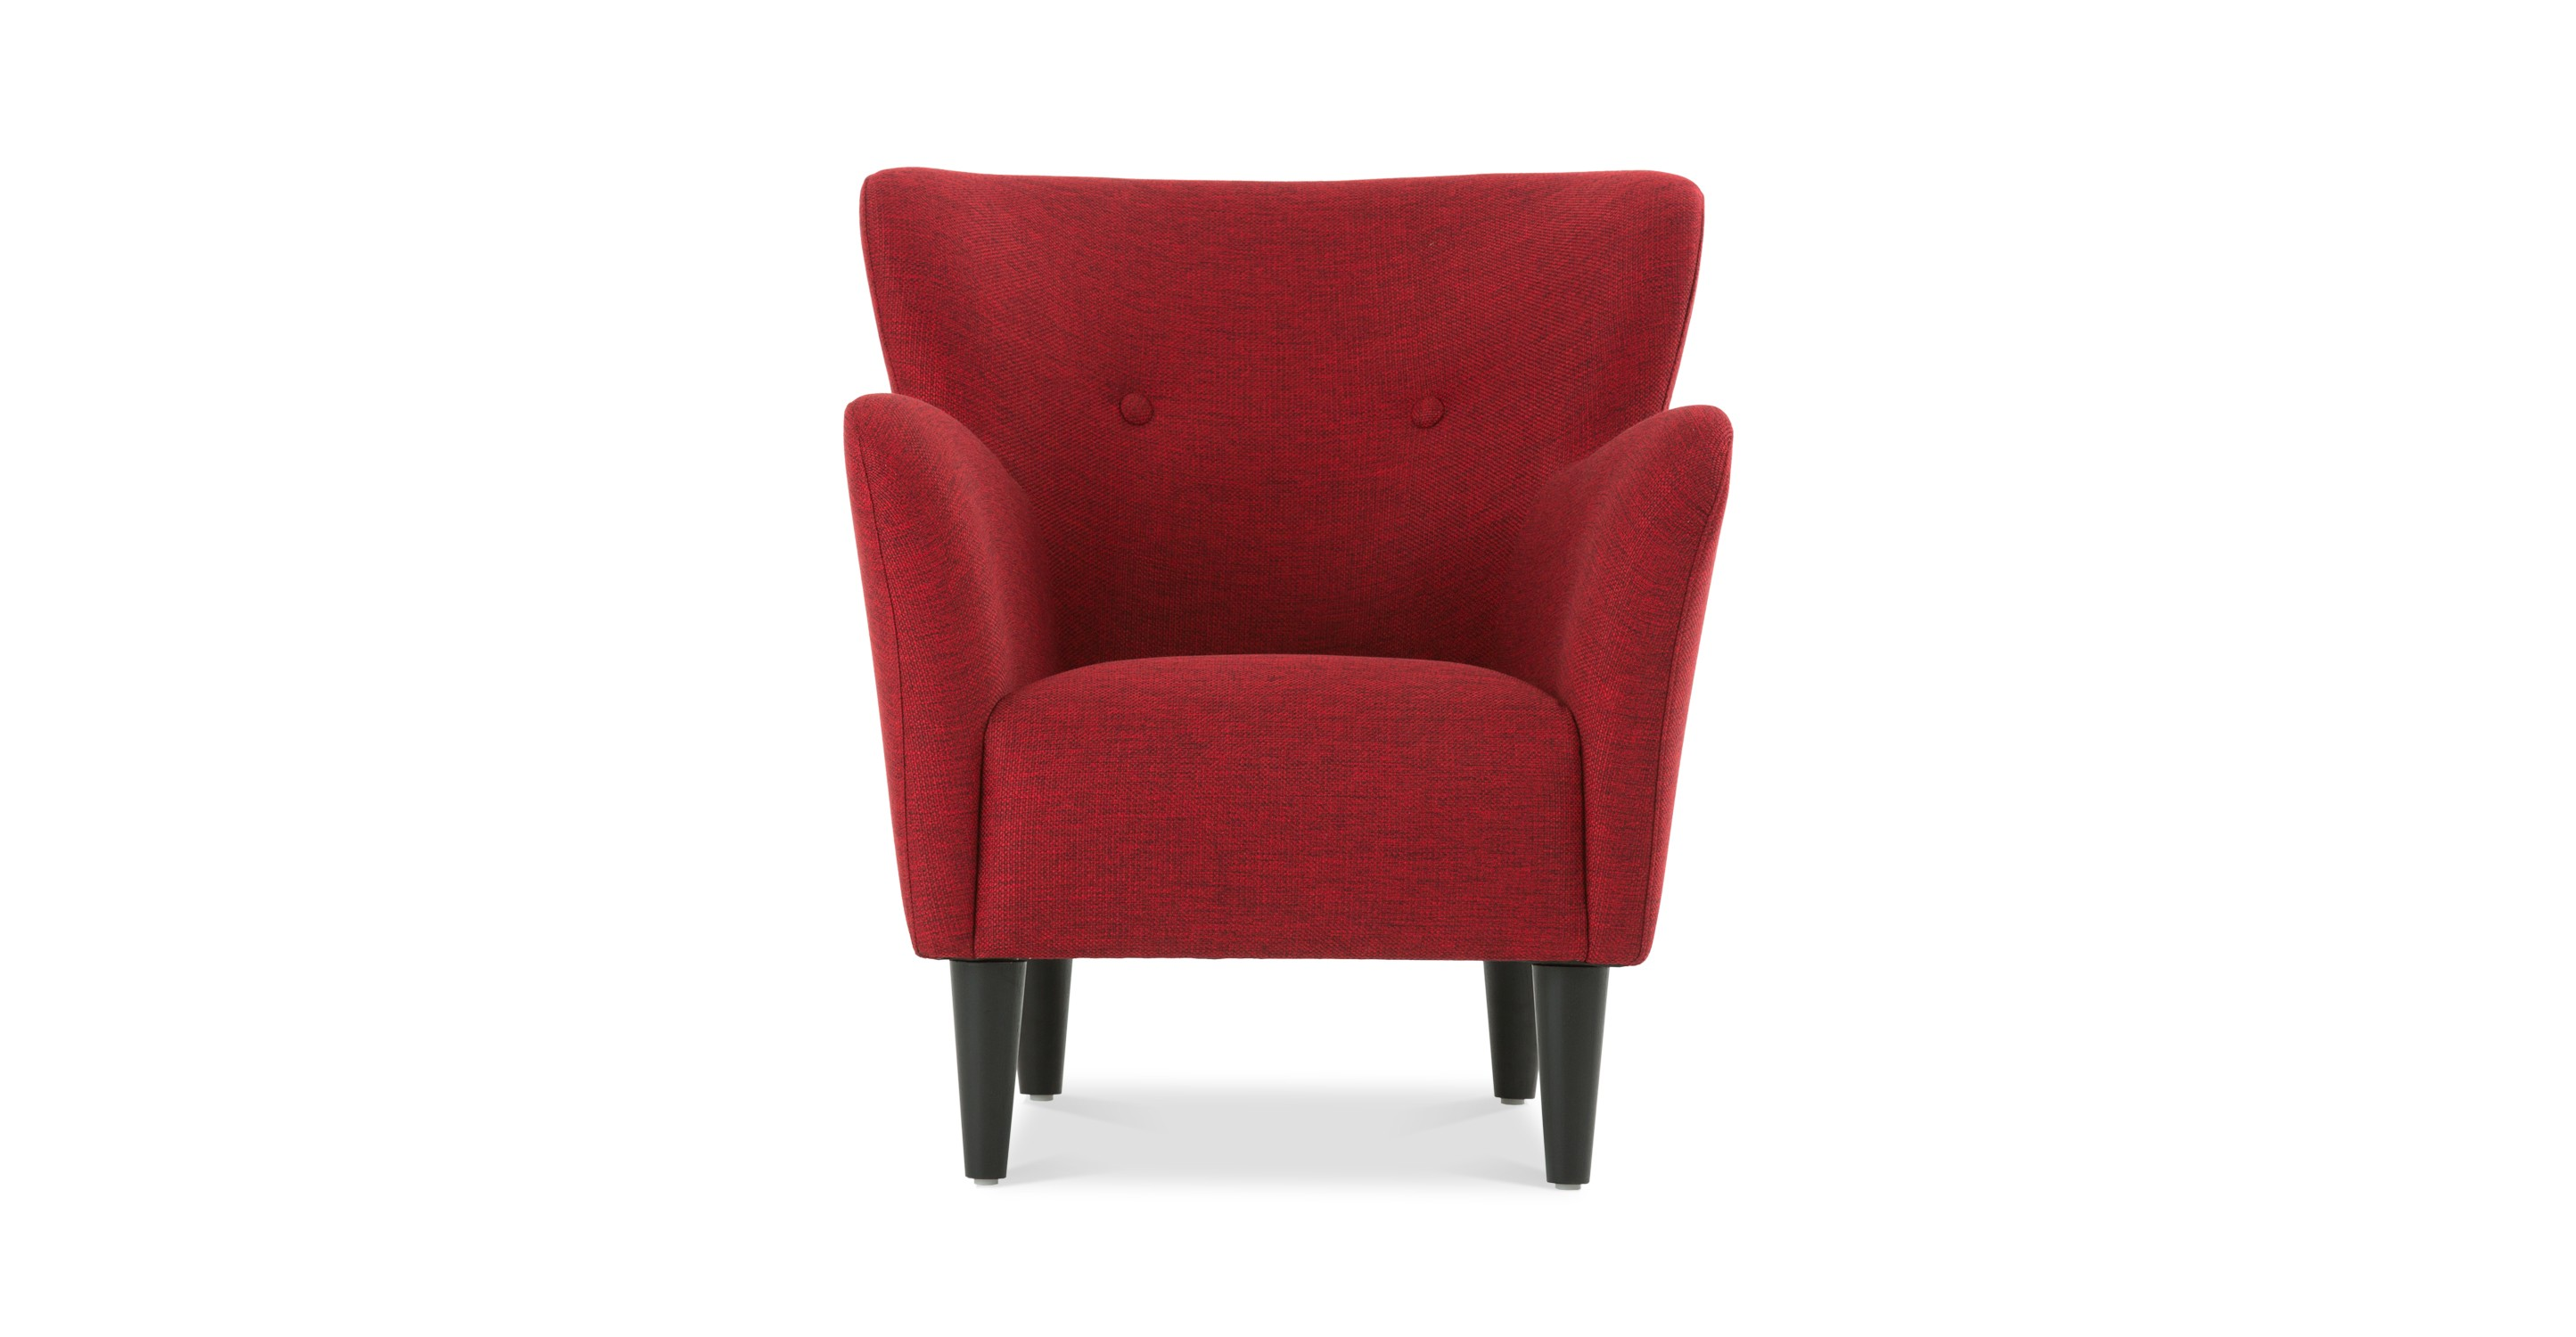 Happy picasso red armchair lounge chairs article for Small contemporary armchairs